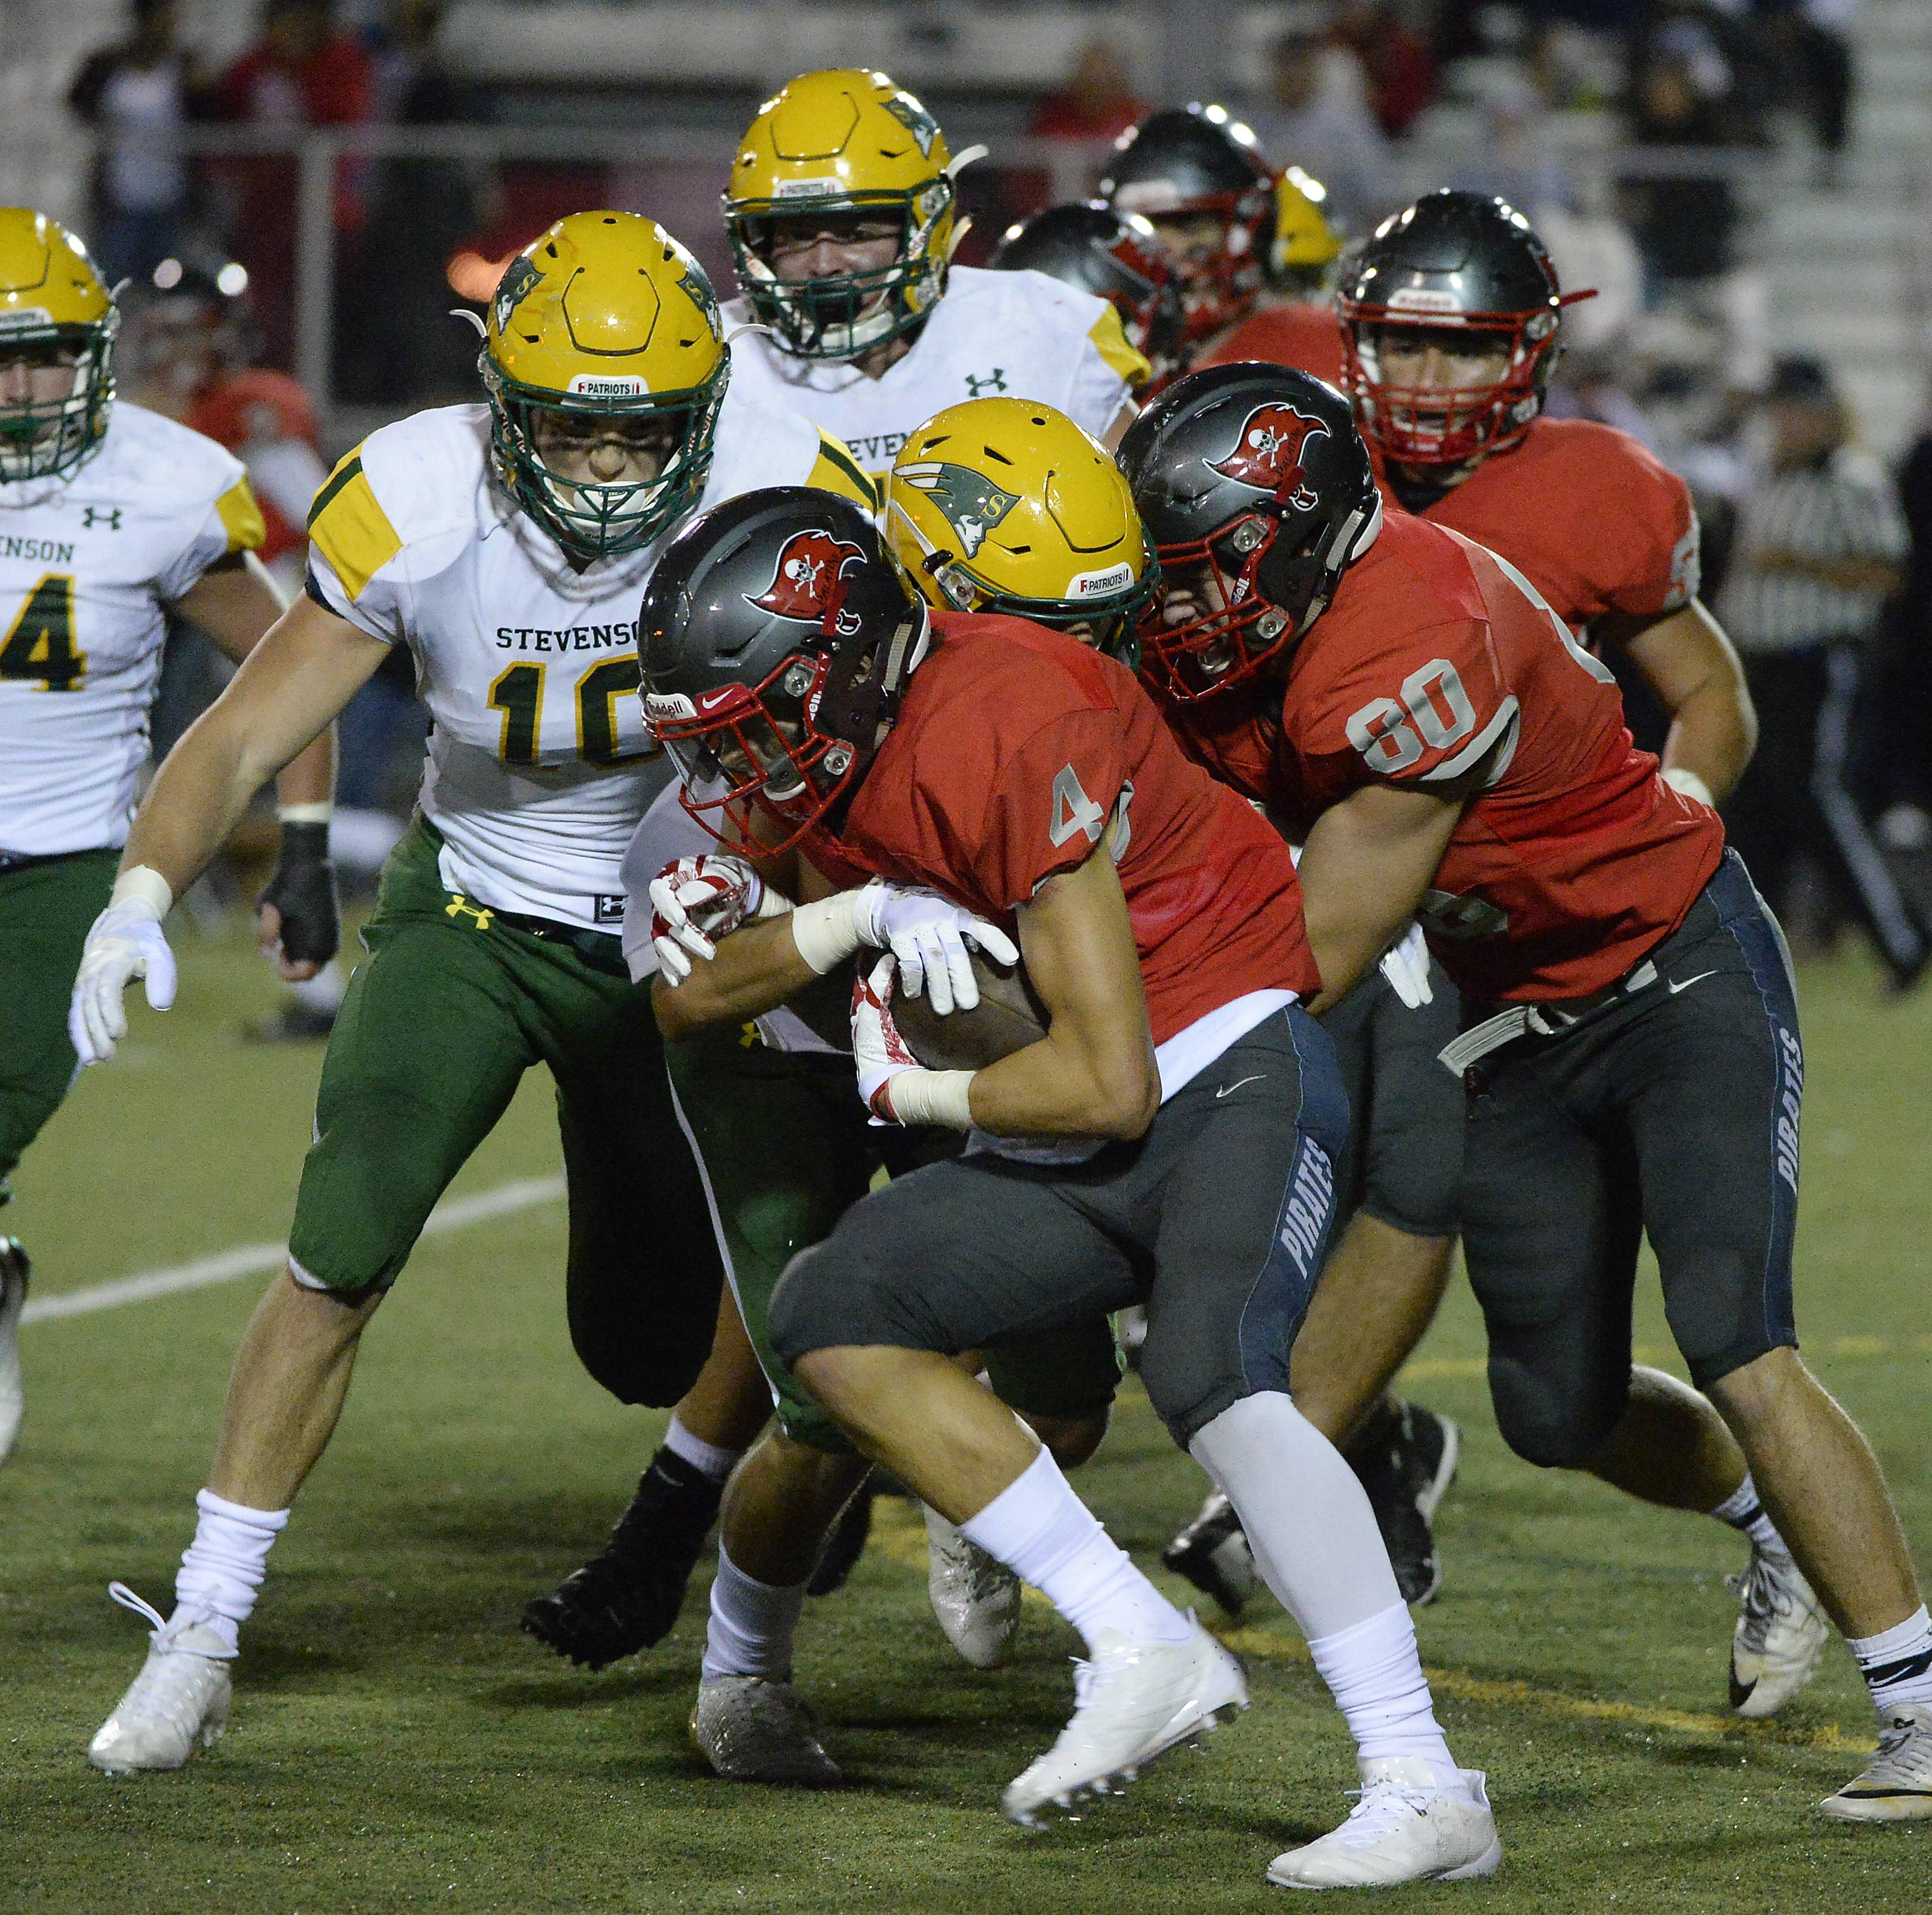 Palatine's Jake Orlando is stopped by Stevenson's defense on Friday.